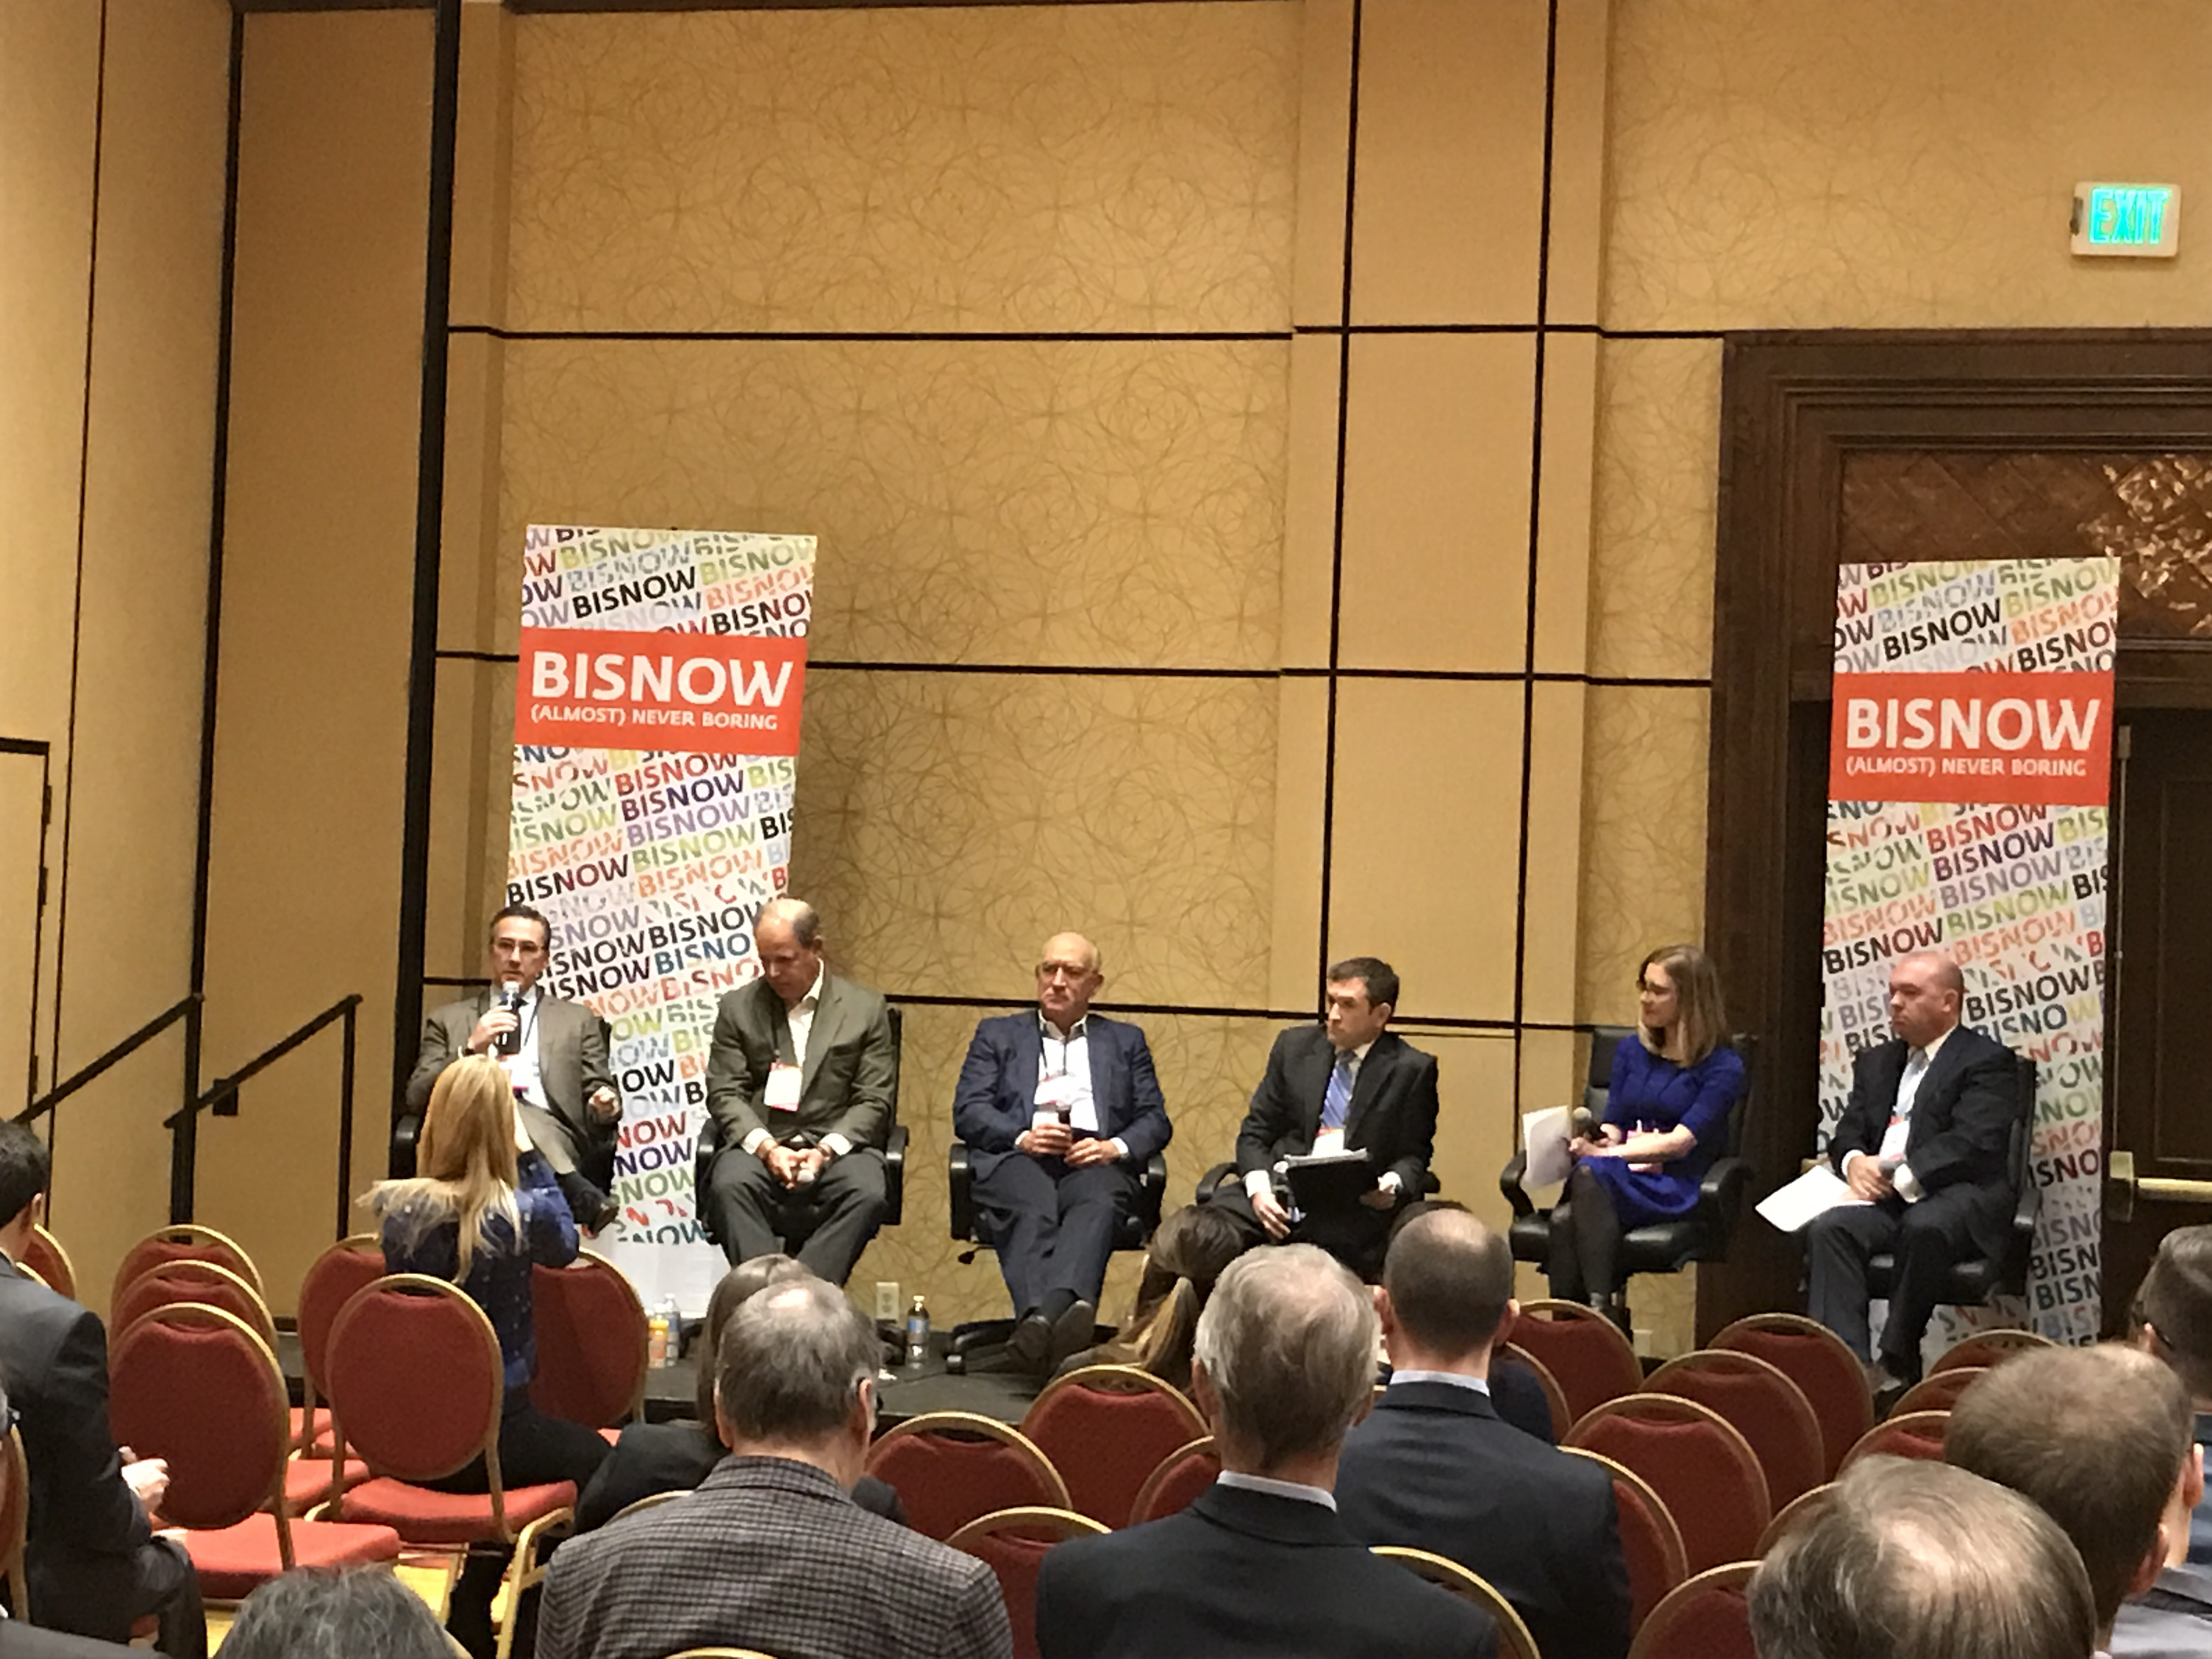 Denver Bisnow_Future of Southeast Suburban_Littleton CO